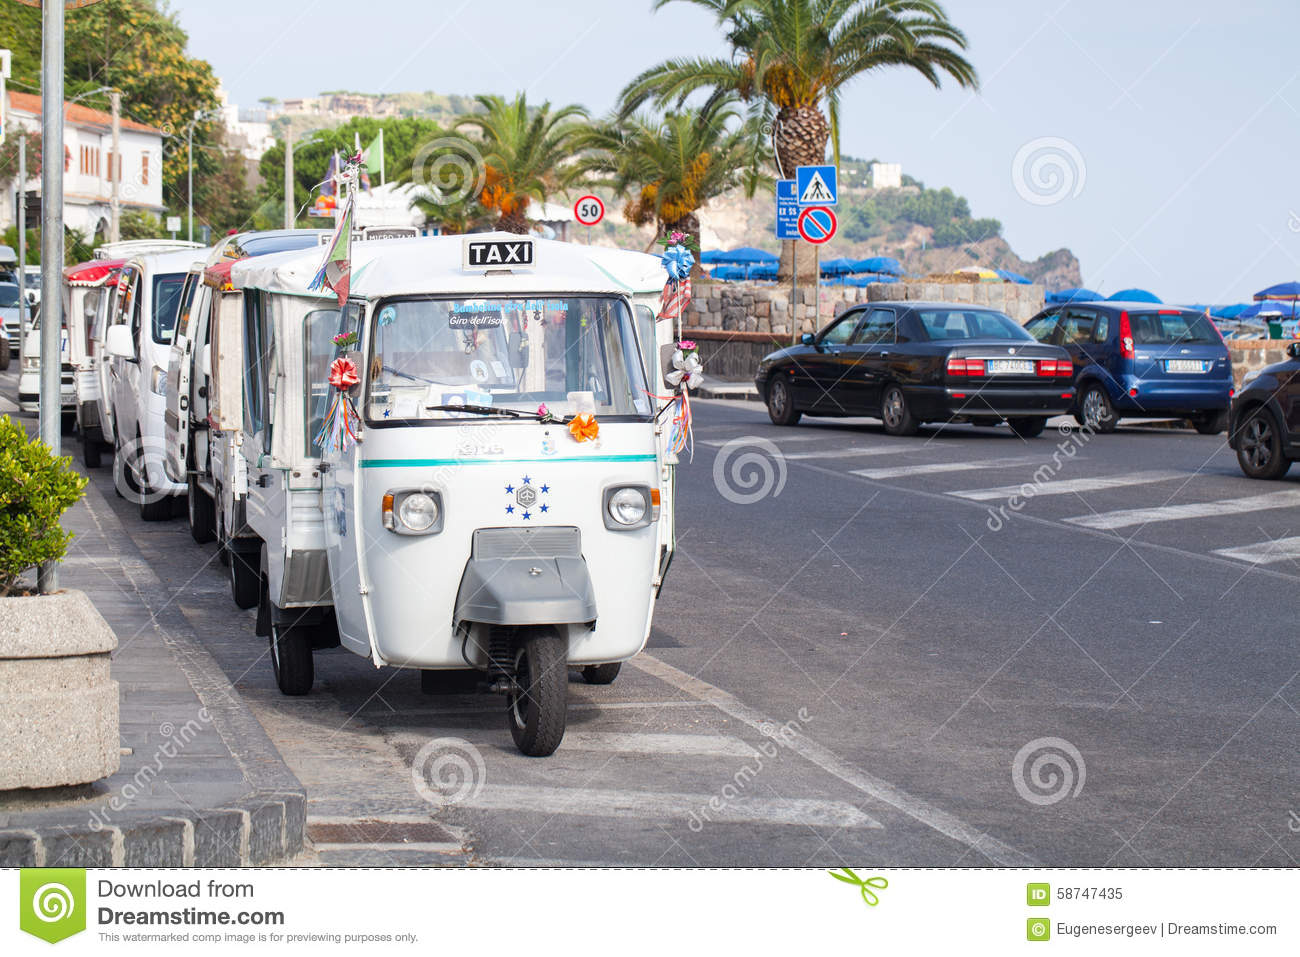 Casamicciola Terme Italy  City new picture : Casamicciola Terme, Italy August 12, 2015: Micro taxi stand parked ...